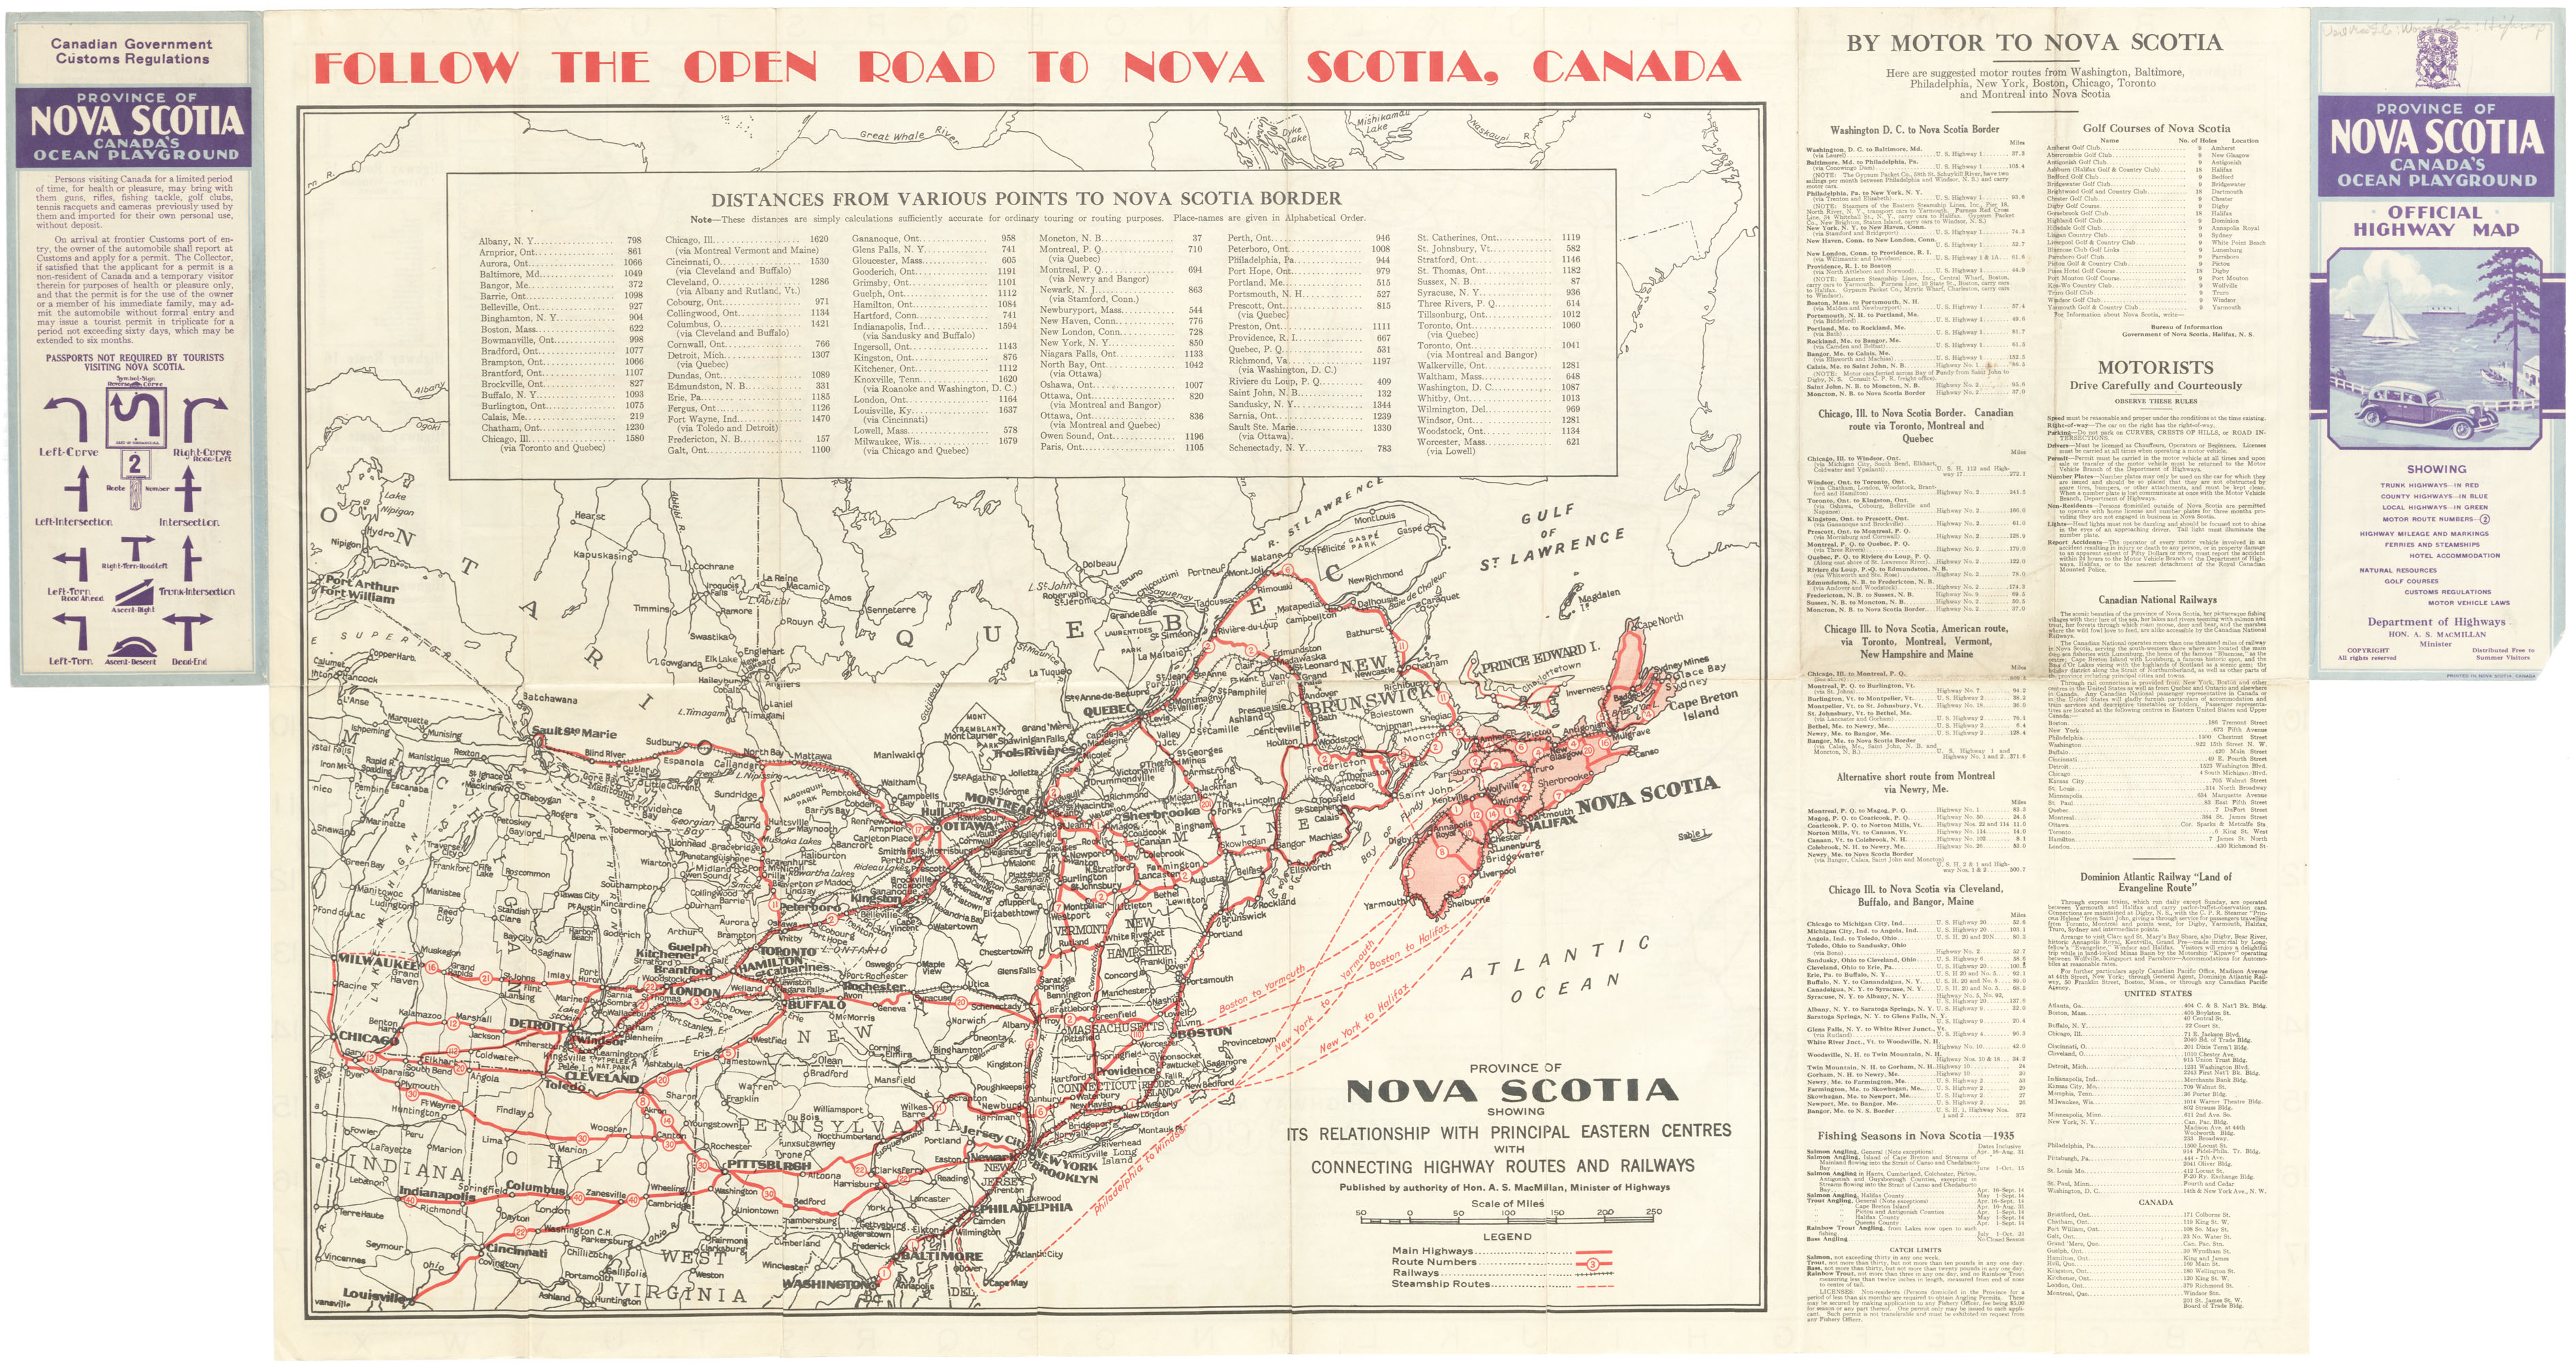 Official Highway Map, published by the Department of Highways, Nova Scotia